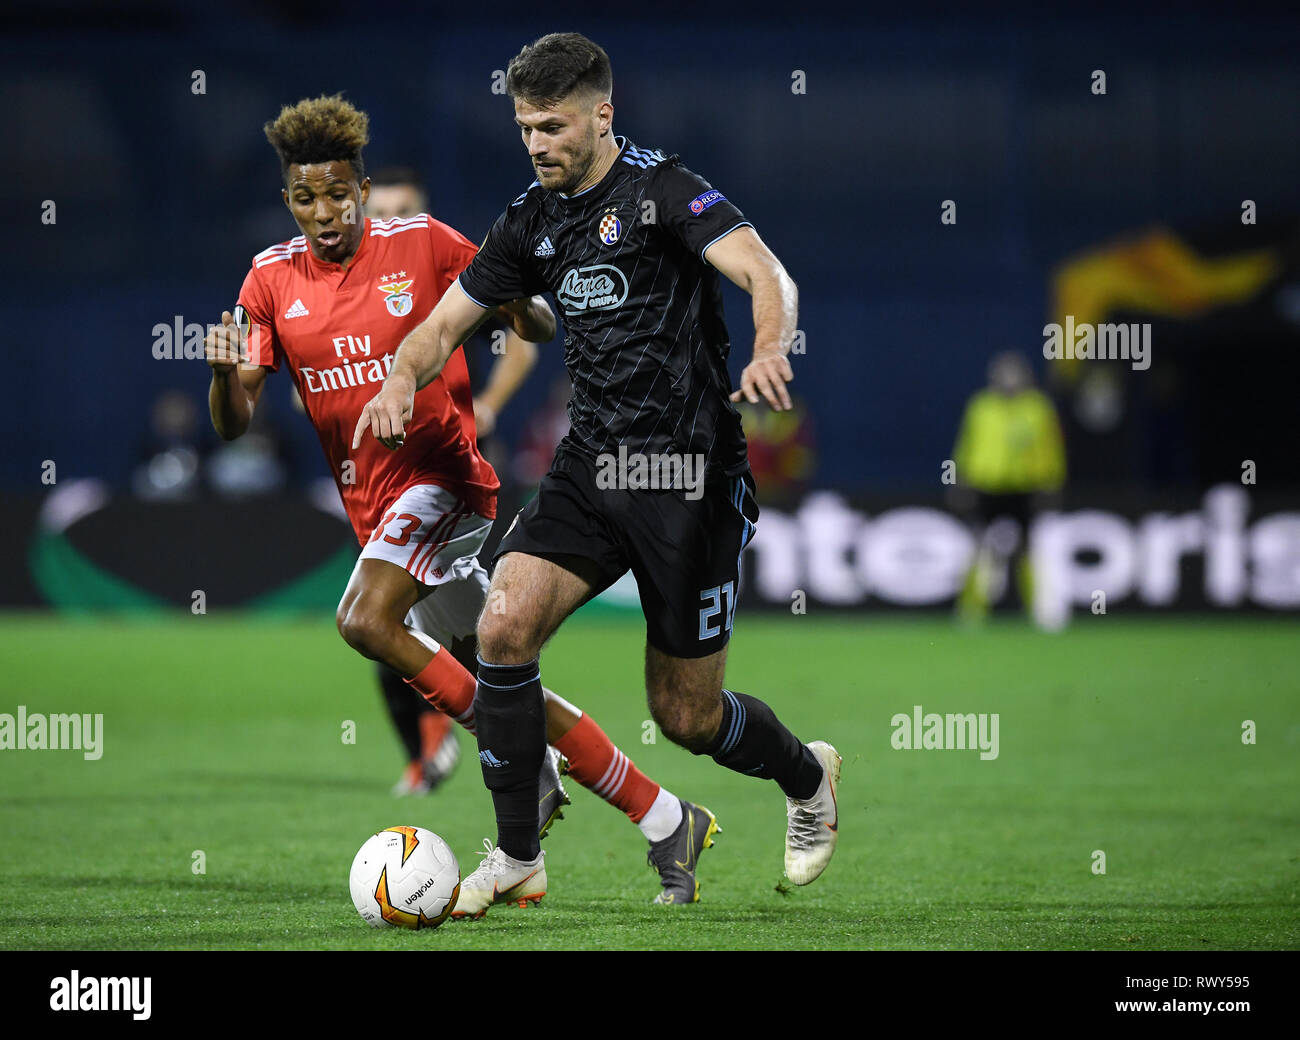 Zagreb Croatia 7th Mar 2019 Nikola Moro R Of Dinamo Zagreb Vies With Gedson Fernandes Of Benfica During Uefa Europa League Round Of 16 First Leg Match Between Dinamo Zagreb And Benfica